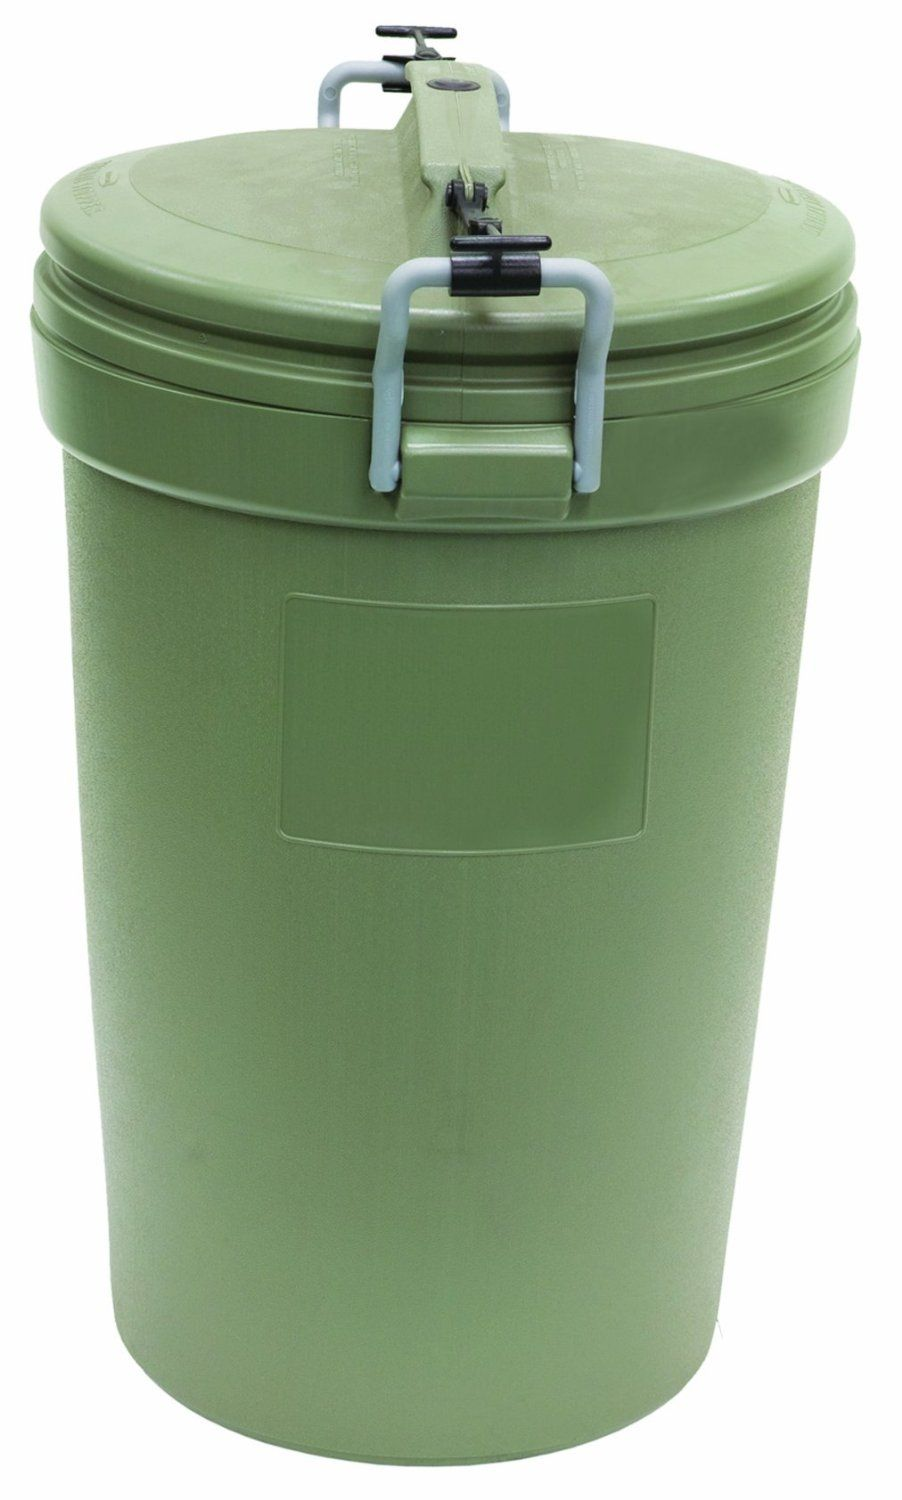 Best Dog Proof Trash Cans Kitchen The Best Dog Proof Trash Cans